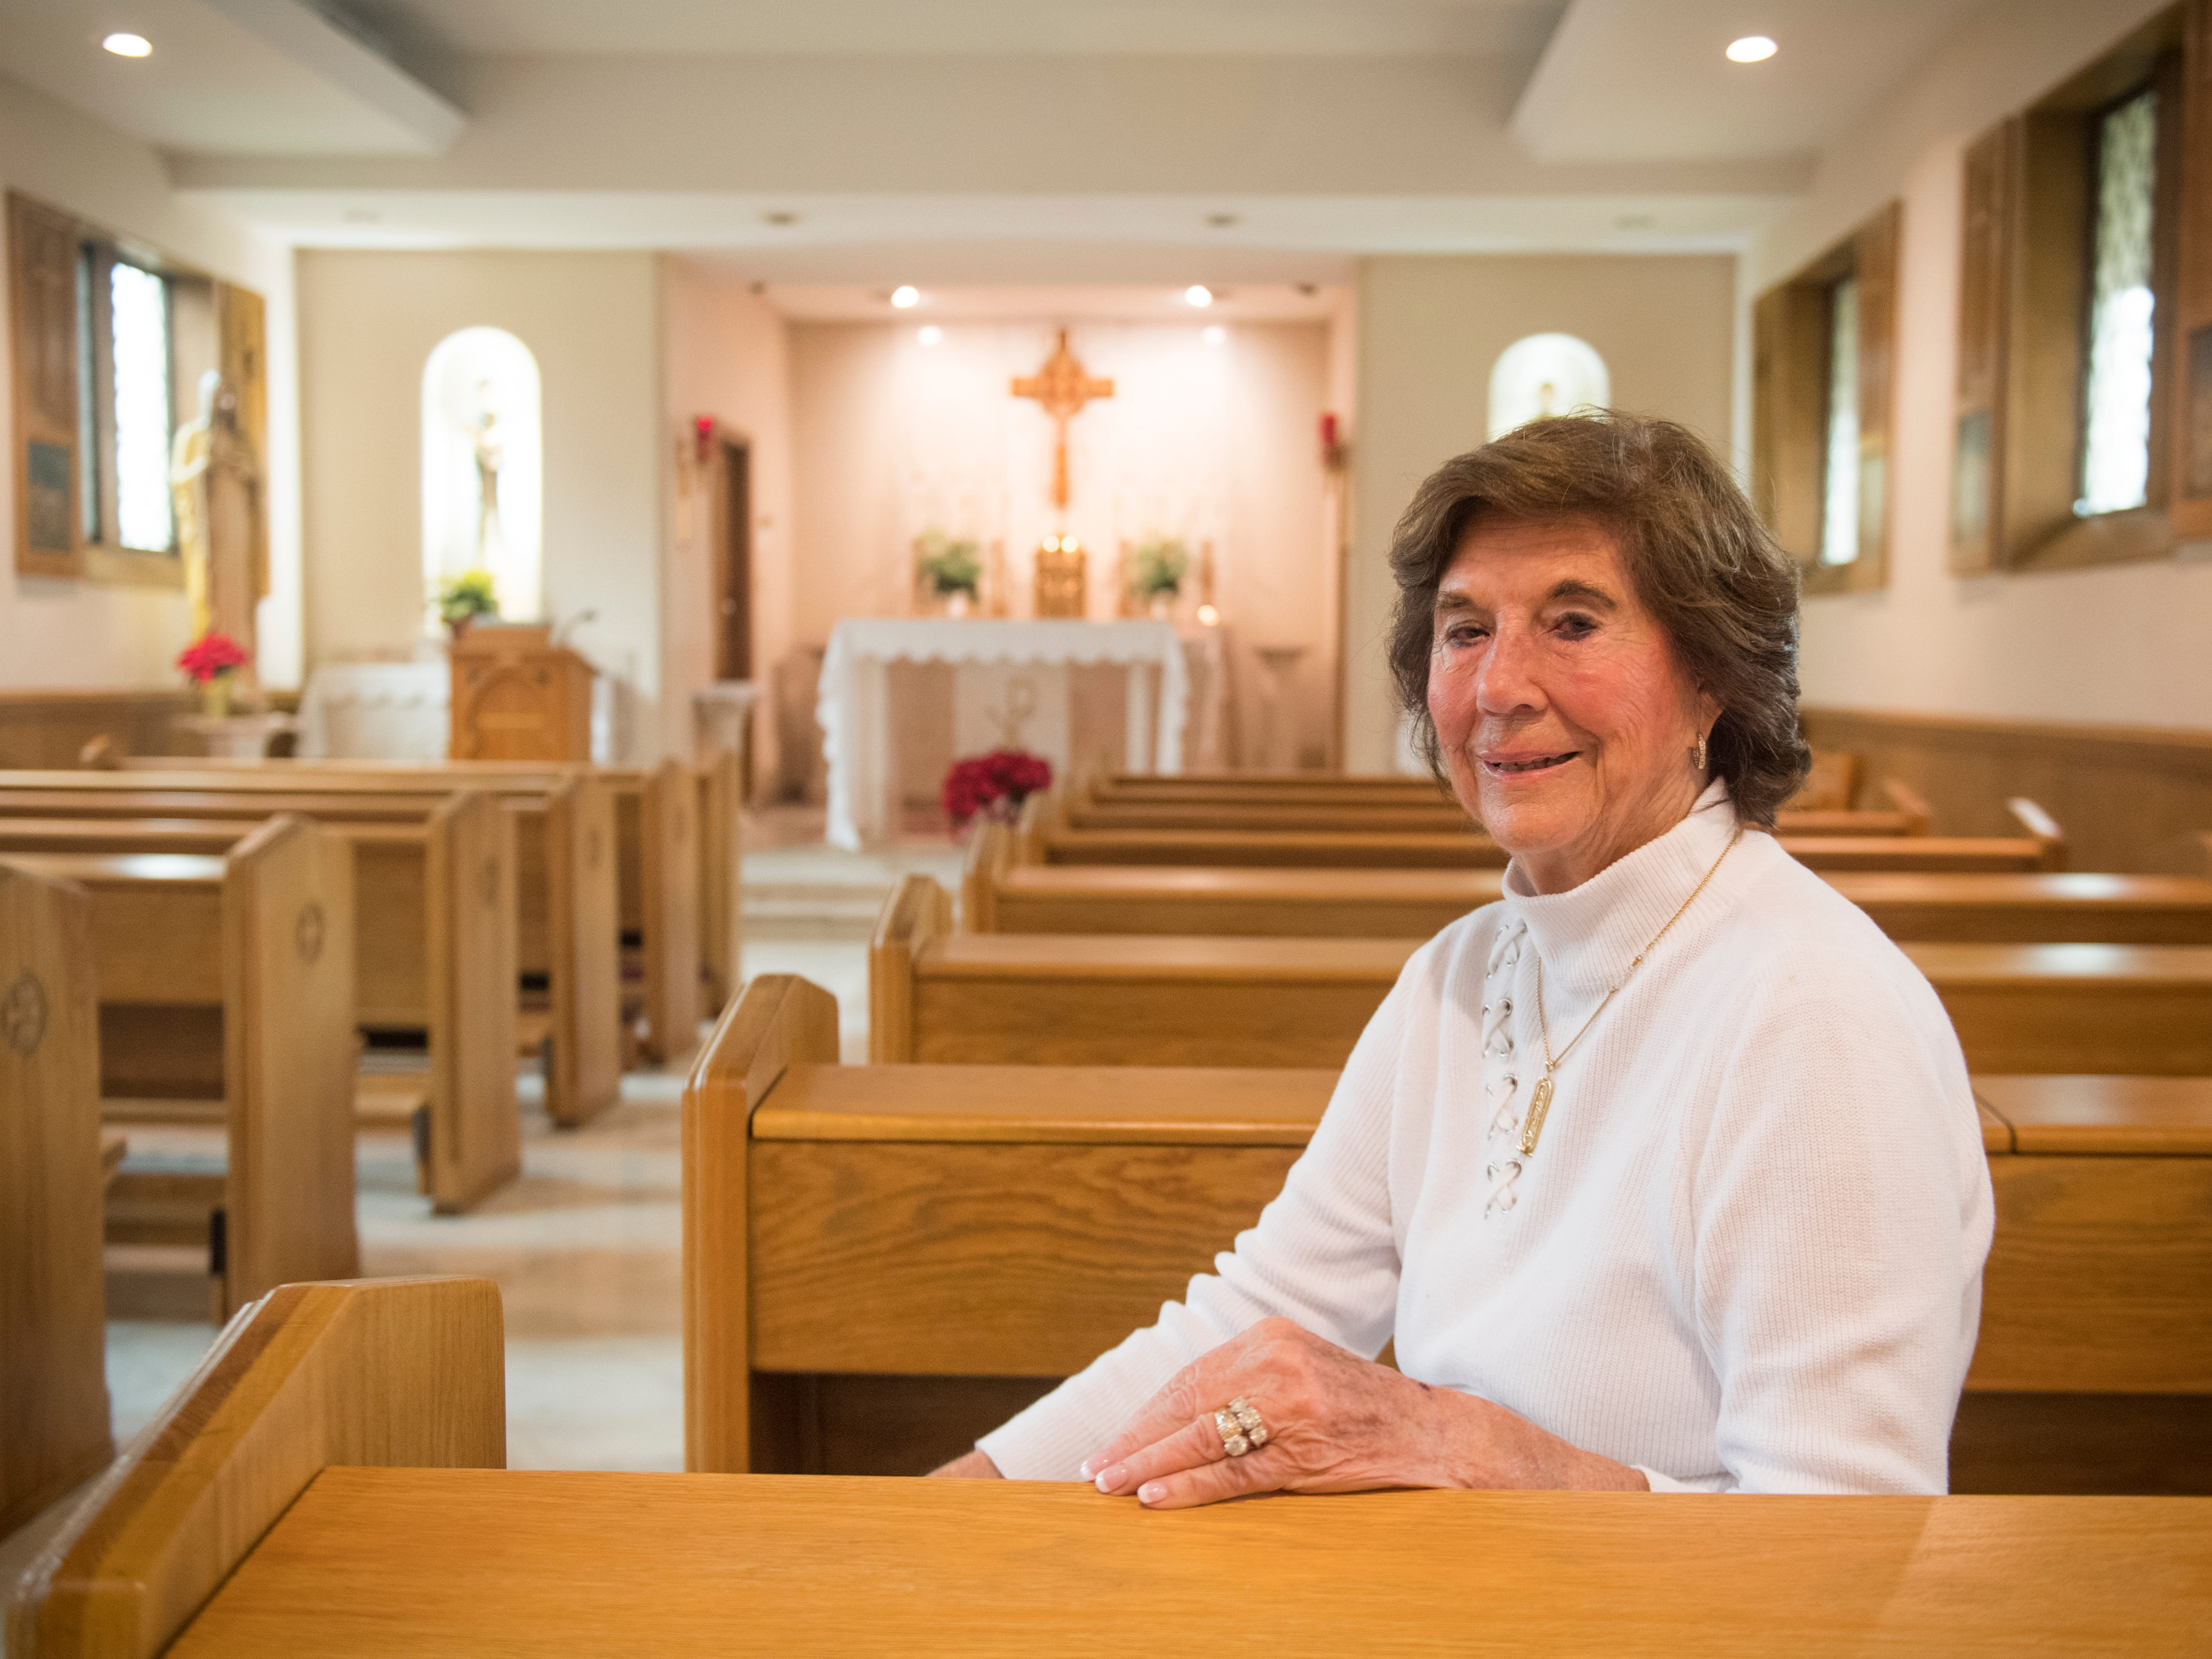 Former St. Mary's School of Nursing director Margaret Heins inside the chapel on Friday, November 30, 2018.